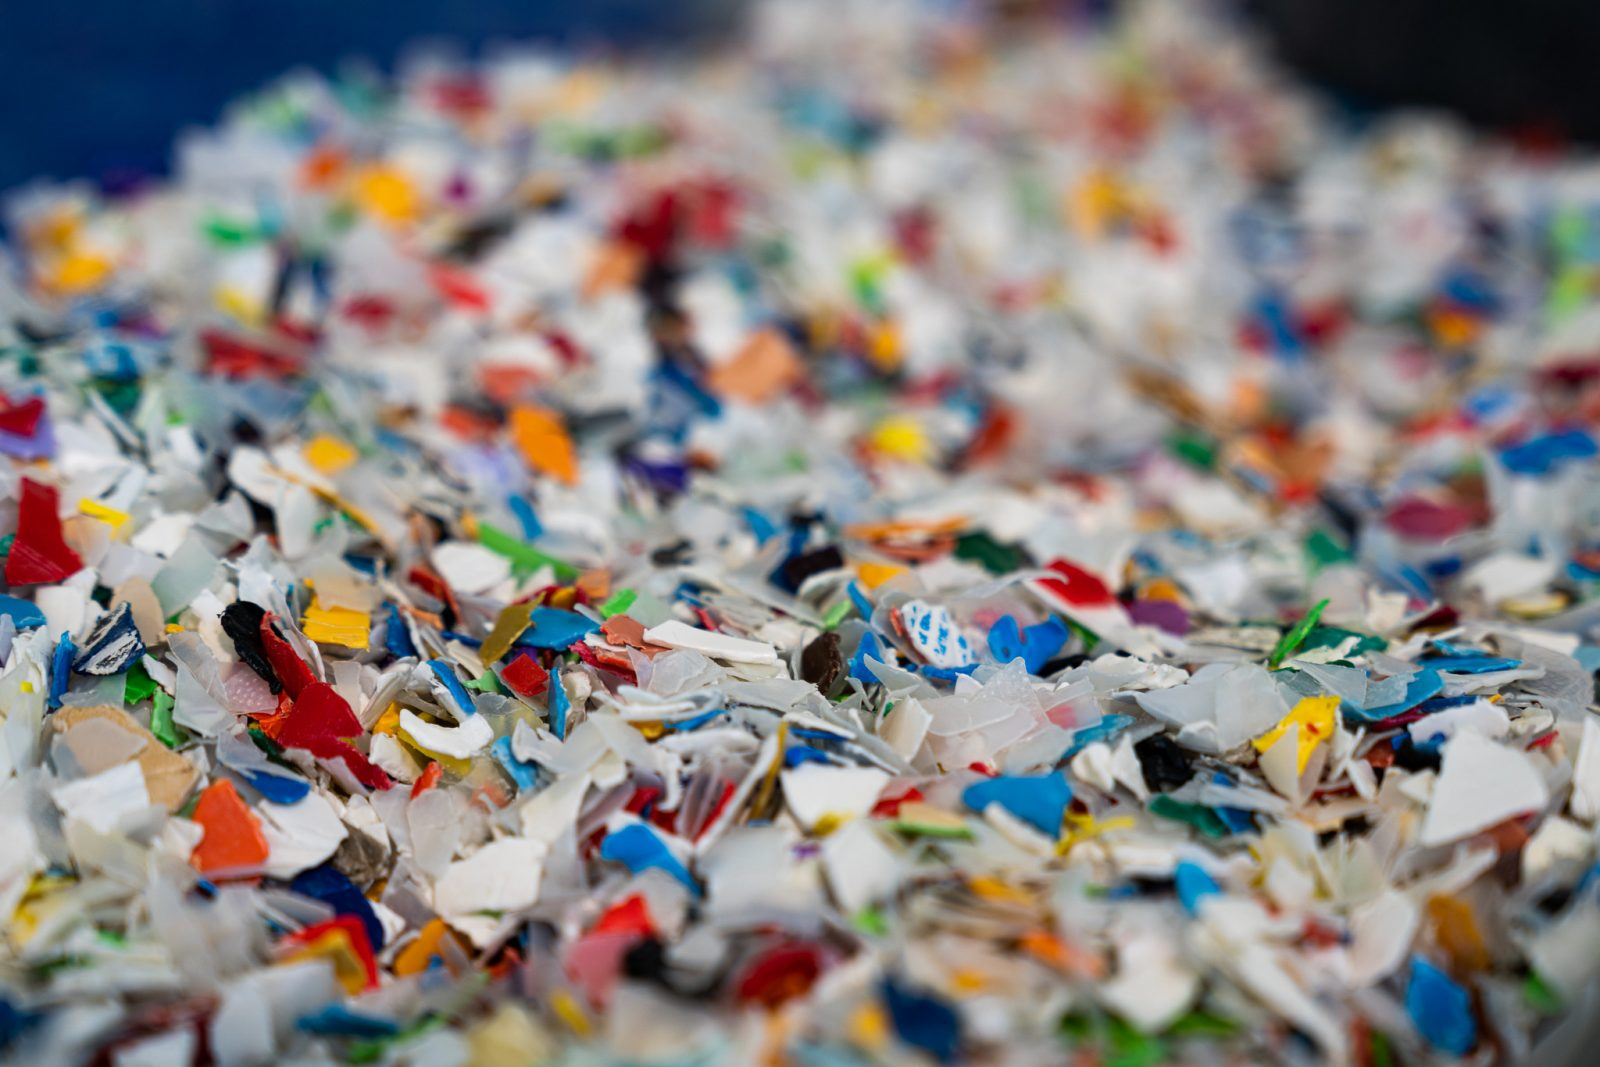 How Can We Make Use of Our Plastic Waste?